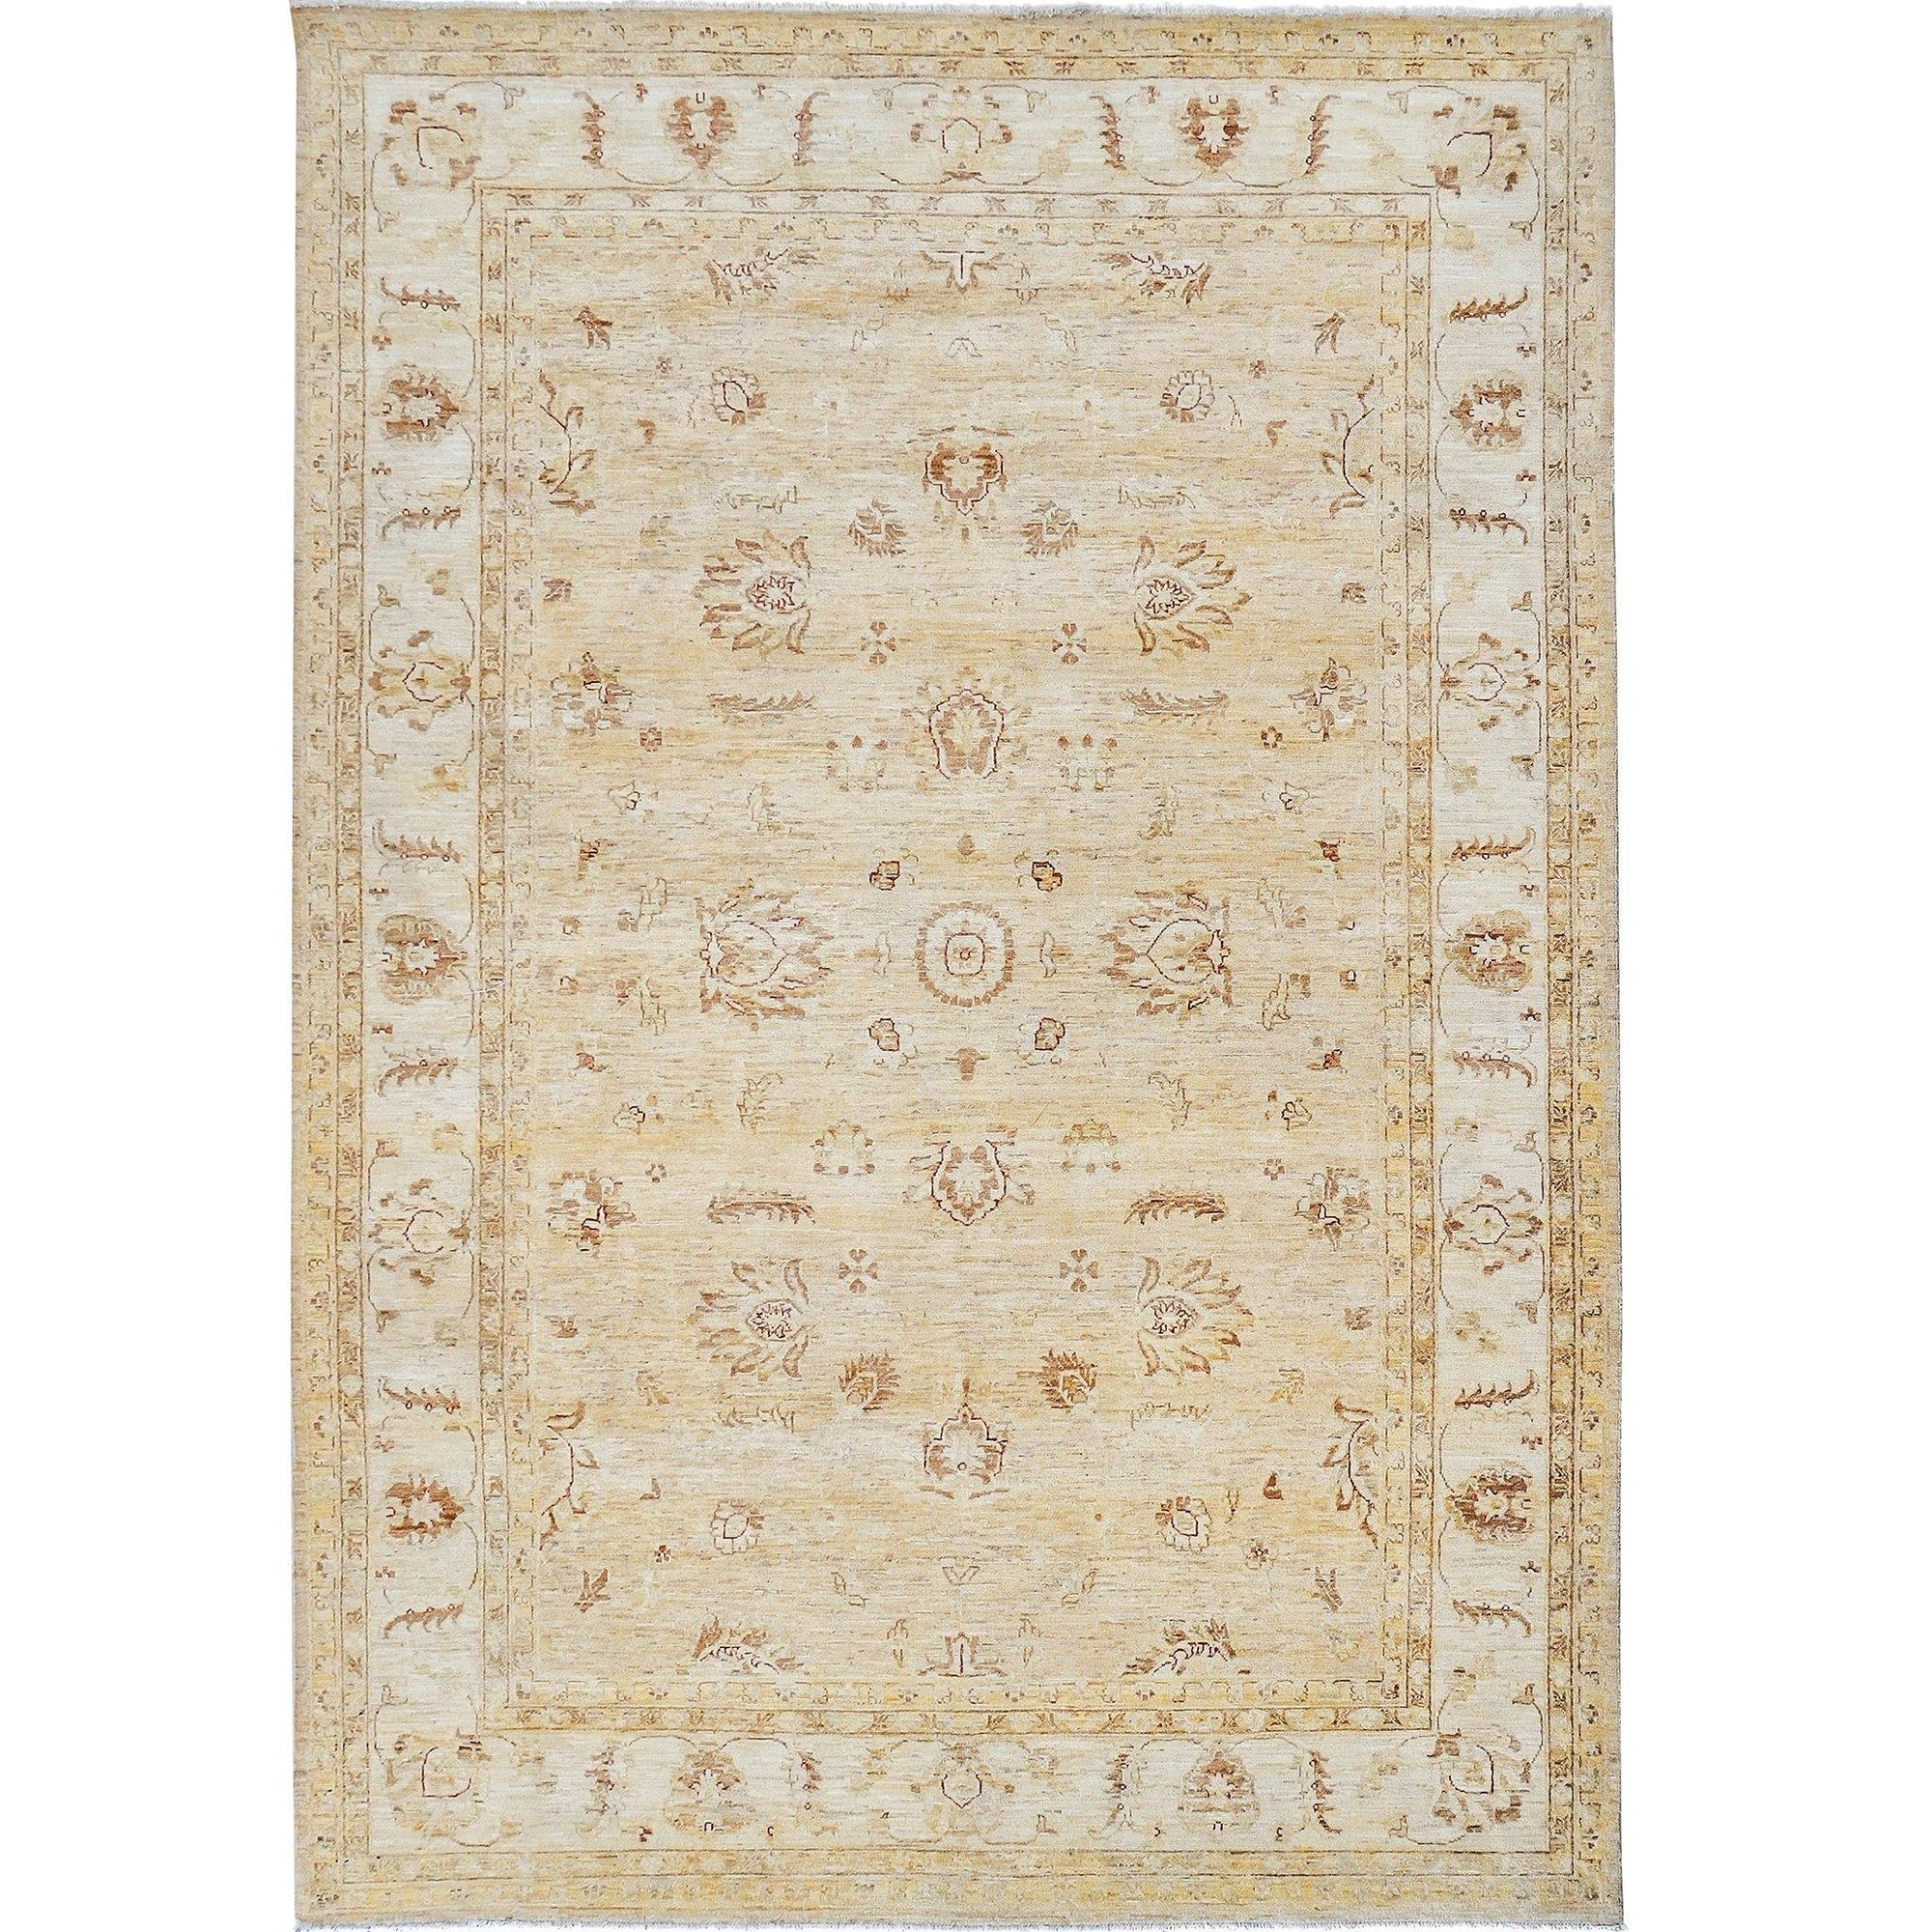 Fine Hand-knotted Vintage Style Chobi Wool Rug 219cm x 293cm Persian-Rug | House-of-Haghi | NewMarket | Auckland | NZ | Handmade Persian Rugs | Hand Knotted Persian Rugs